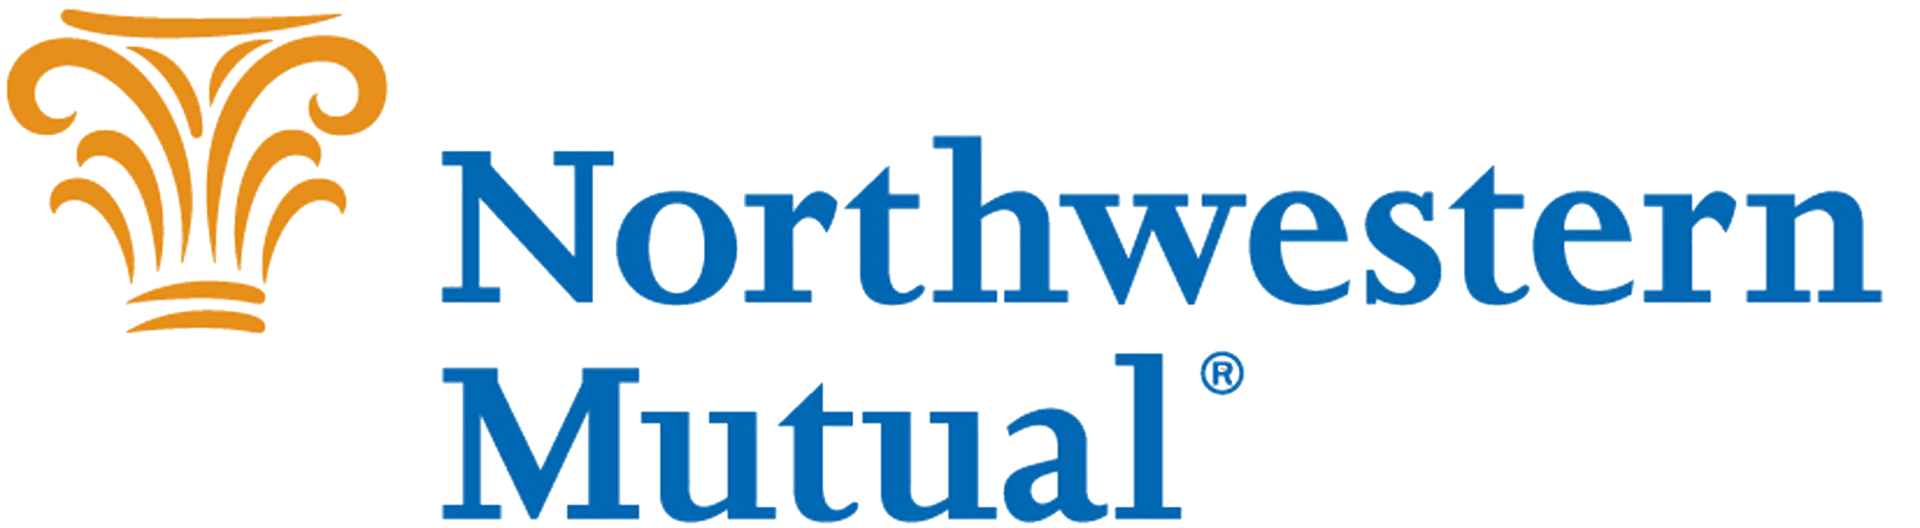 https://skyhookfoundation.org/wp-content/uploads/2019/04/Northwestern-Mutual-LOGO.png